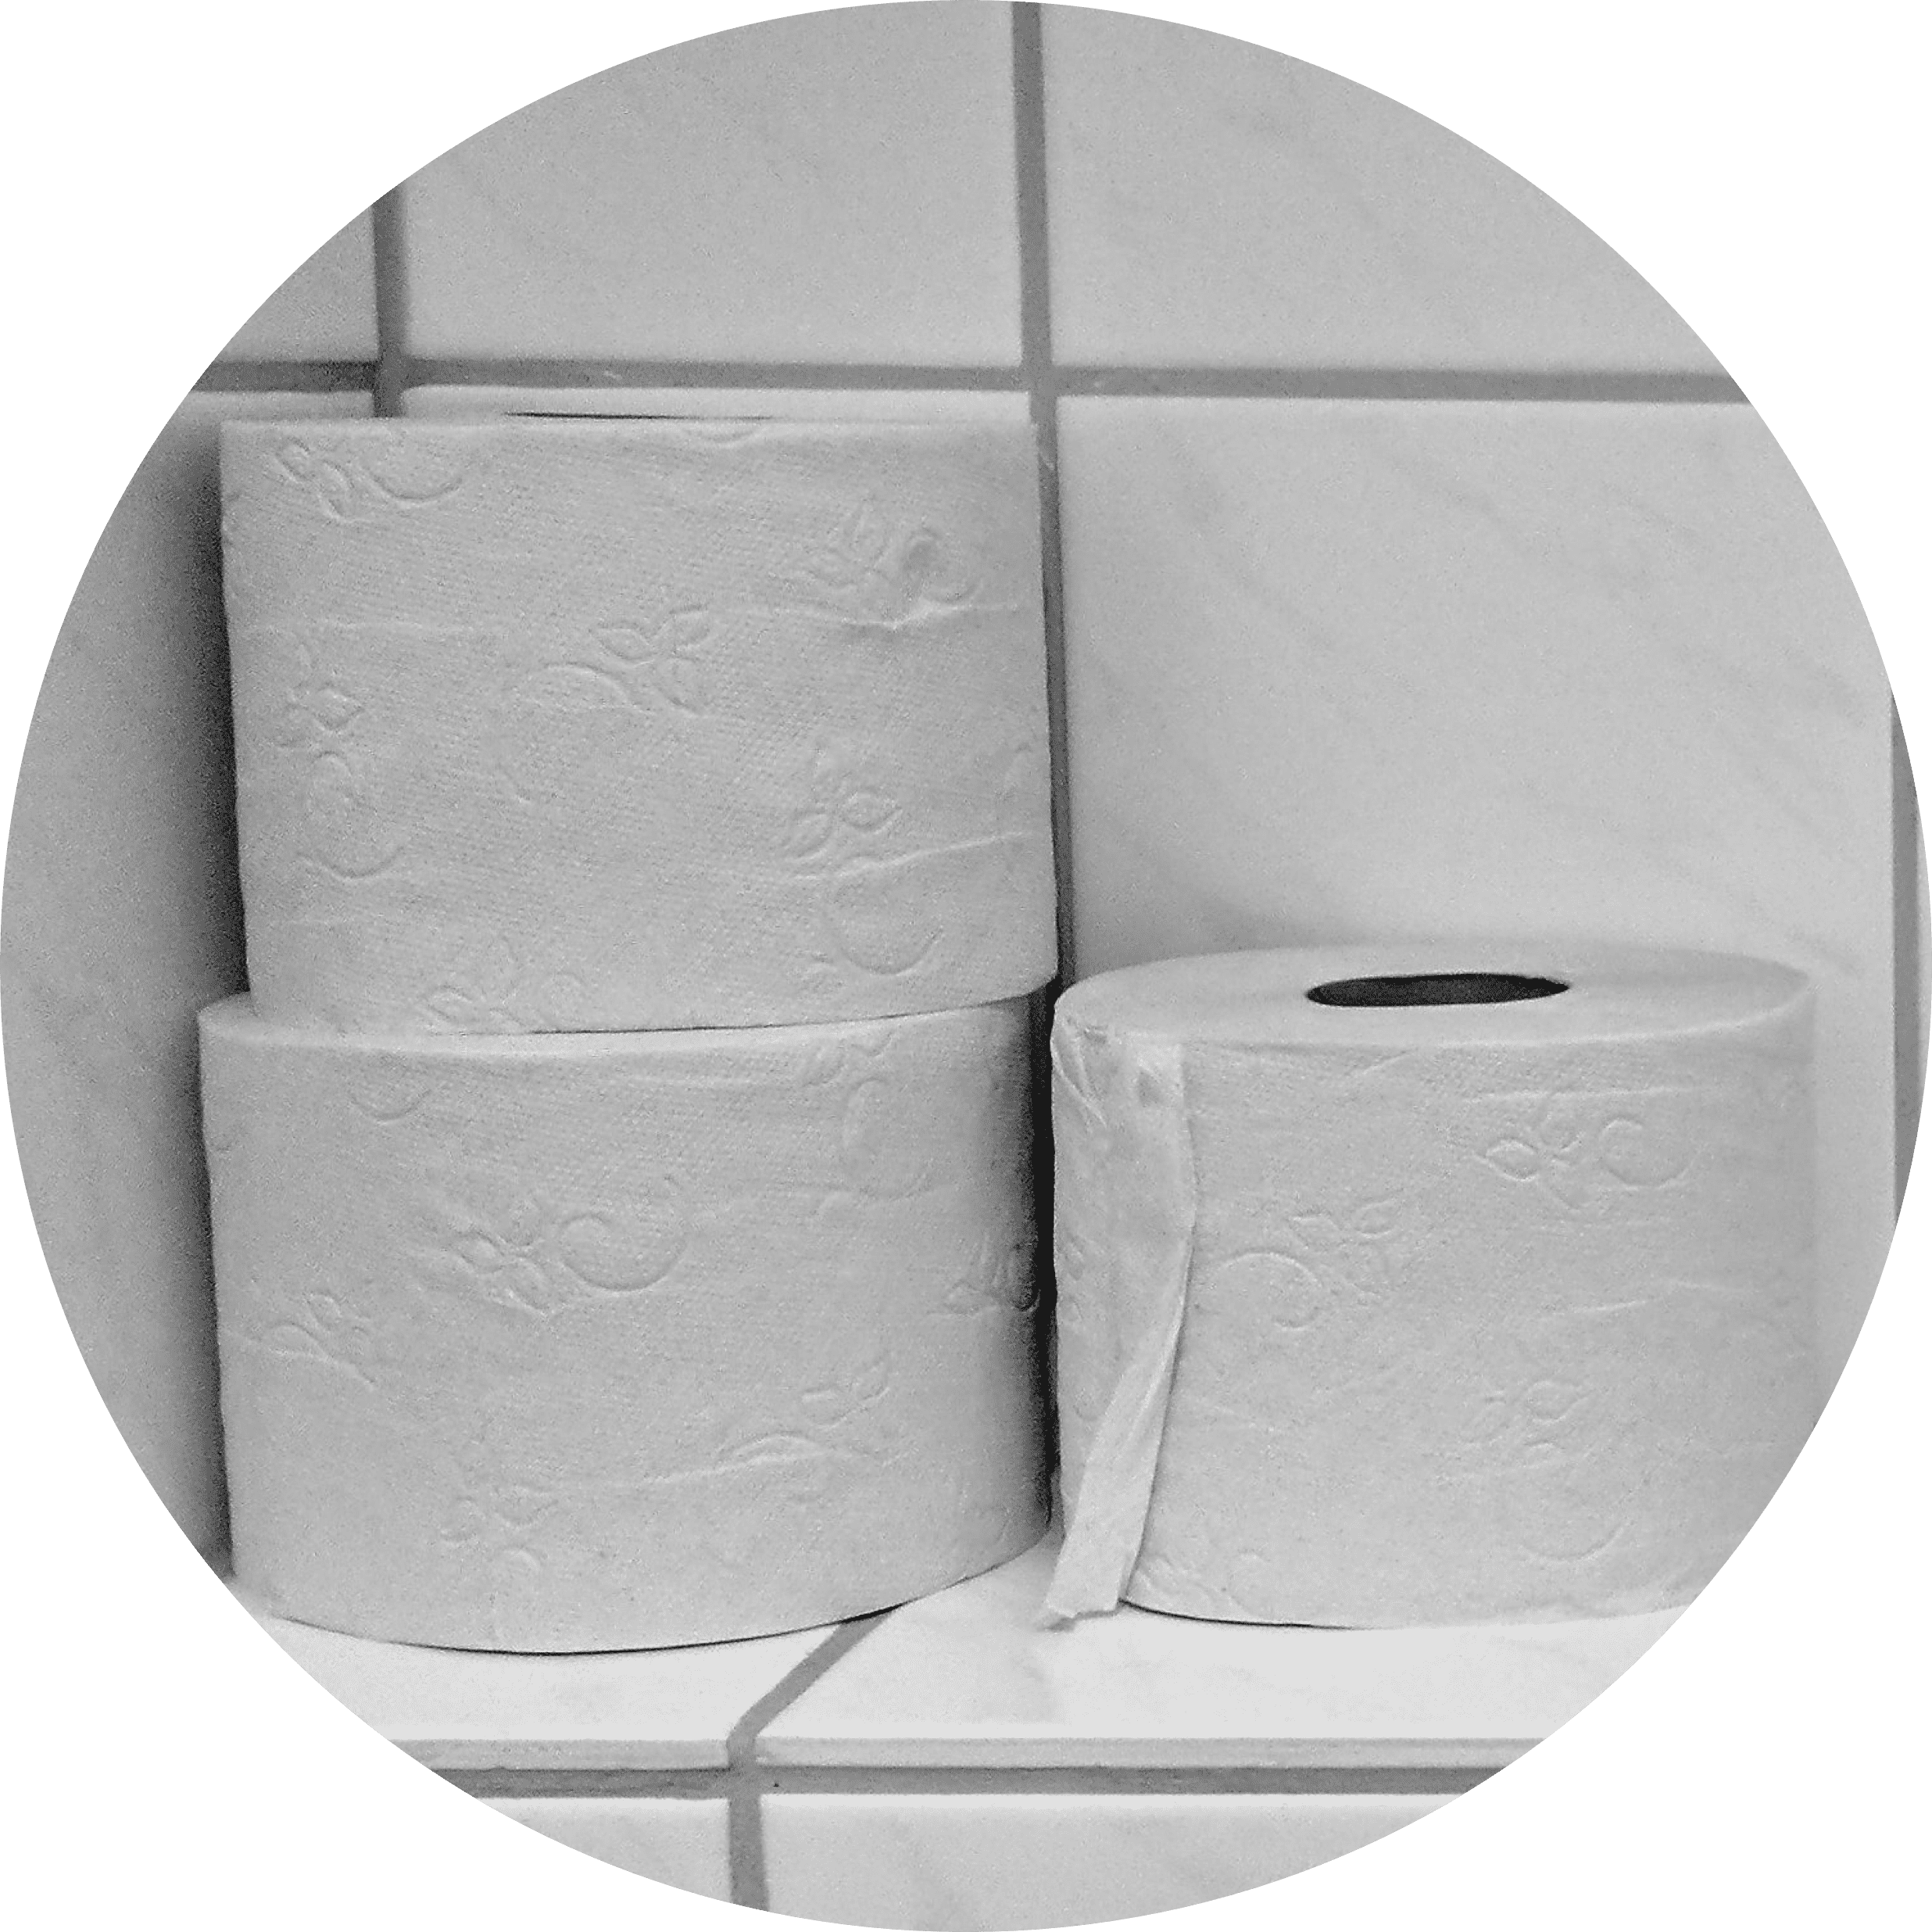 Toilet Roll | IT Storeroom